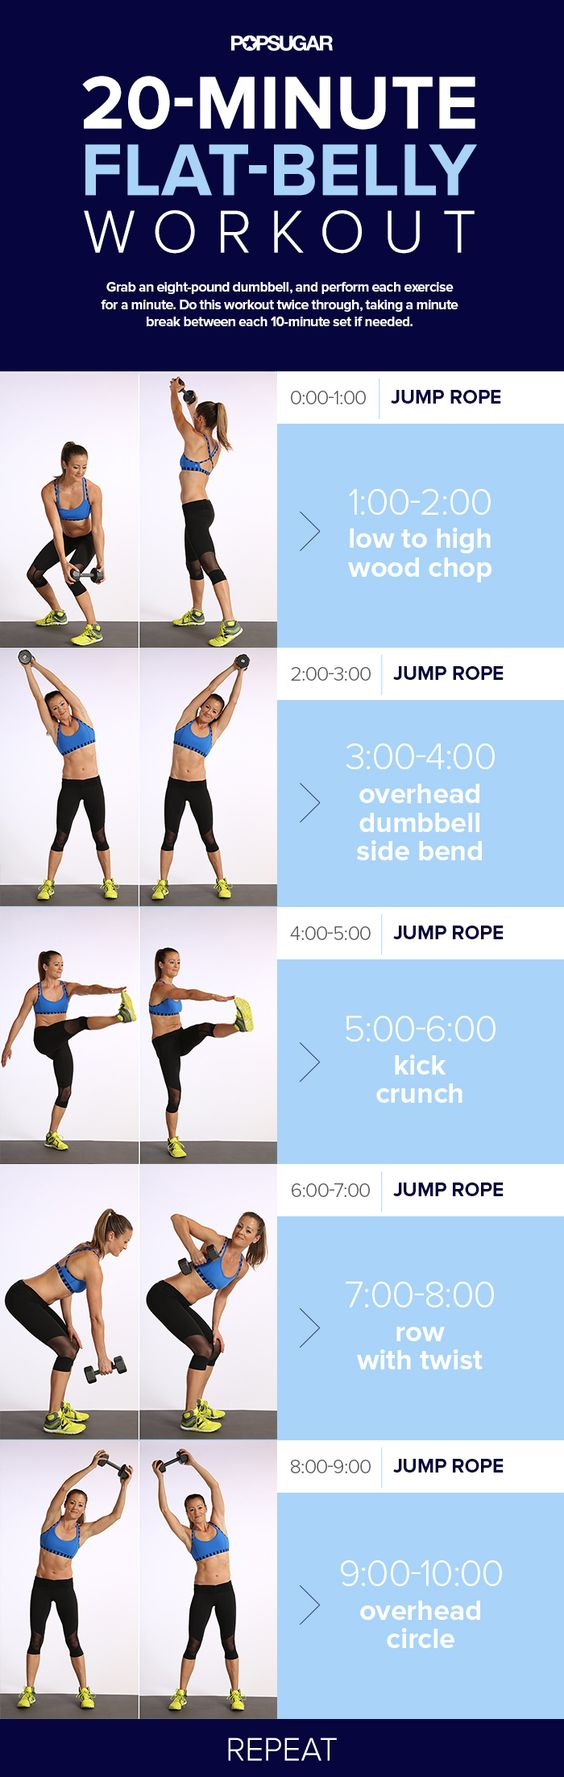 25 Hiit Cardio Workouts That Will Get You In The Best Shape Of Your Life!  3bb36f68_c61bcb81083bbc55_thumb_temp_pinterest_post_image_file8452361418742459